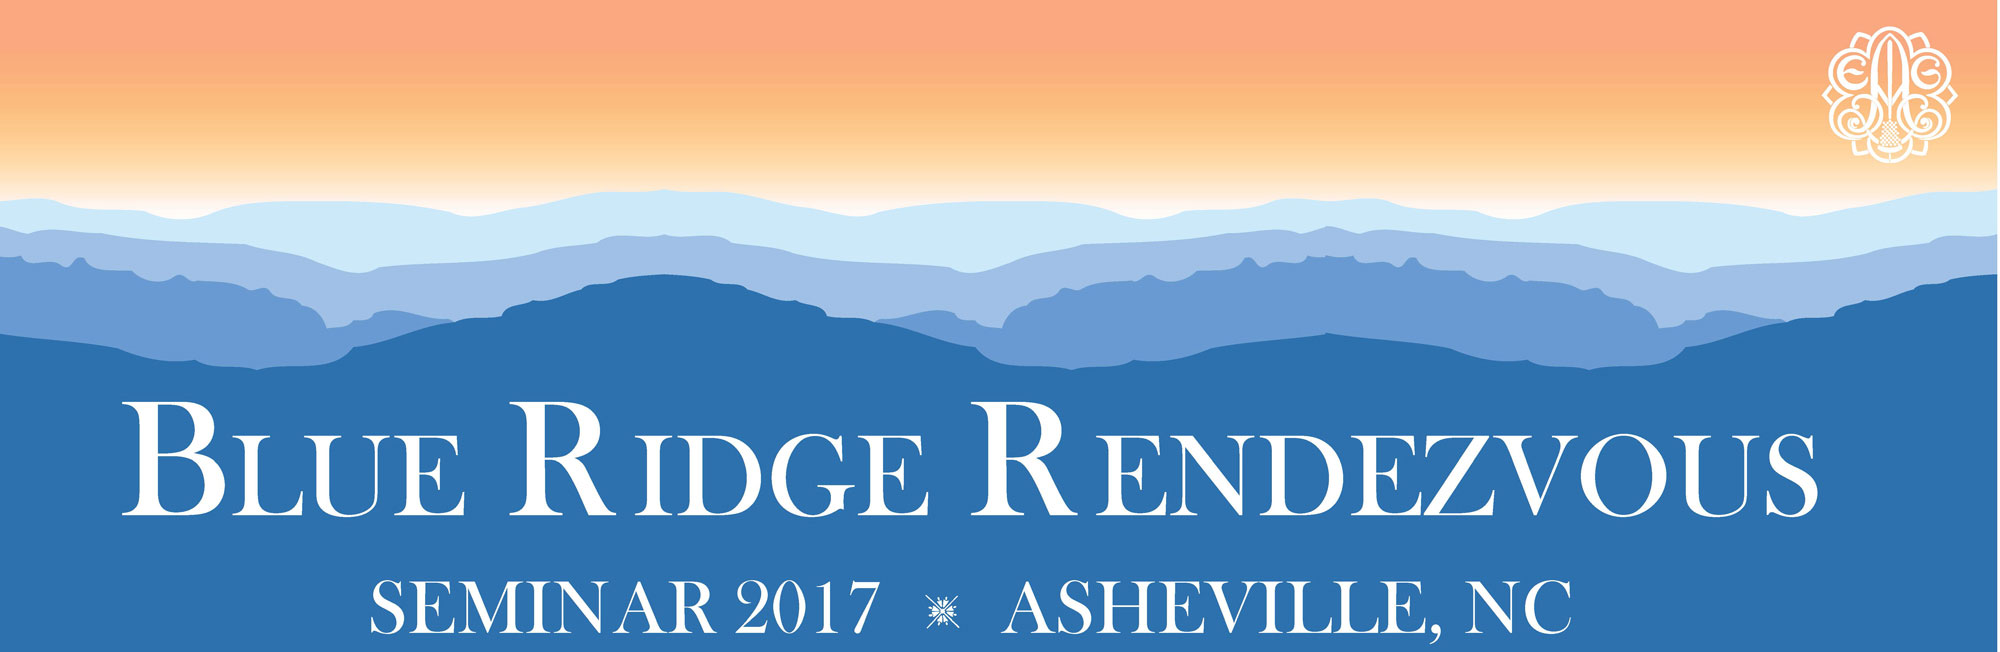 Blue-Ridge-Rendezvous-Banner-Sized-for-Cvent